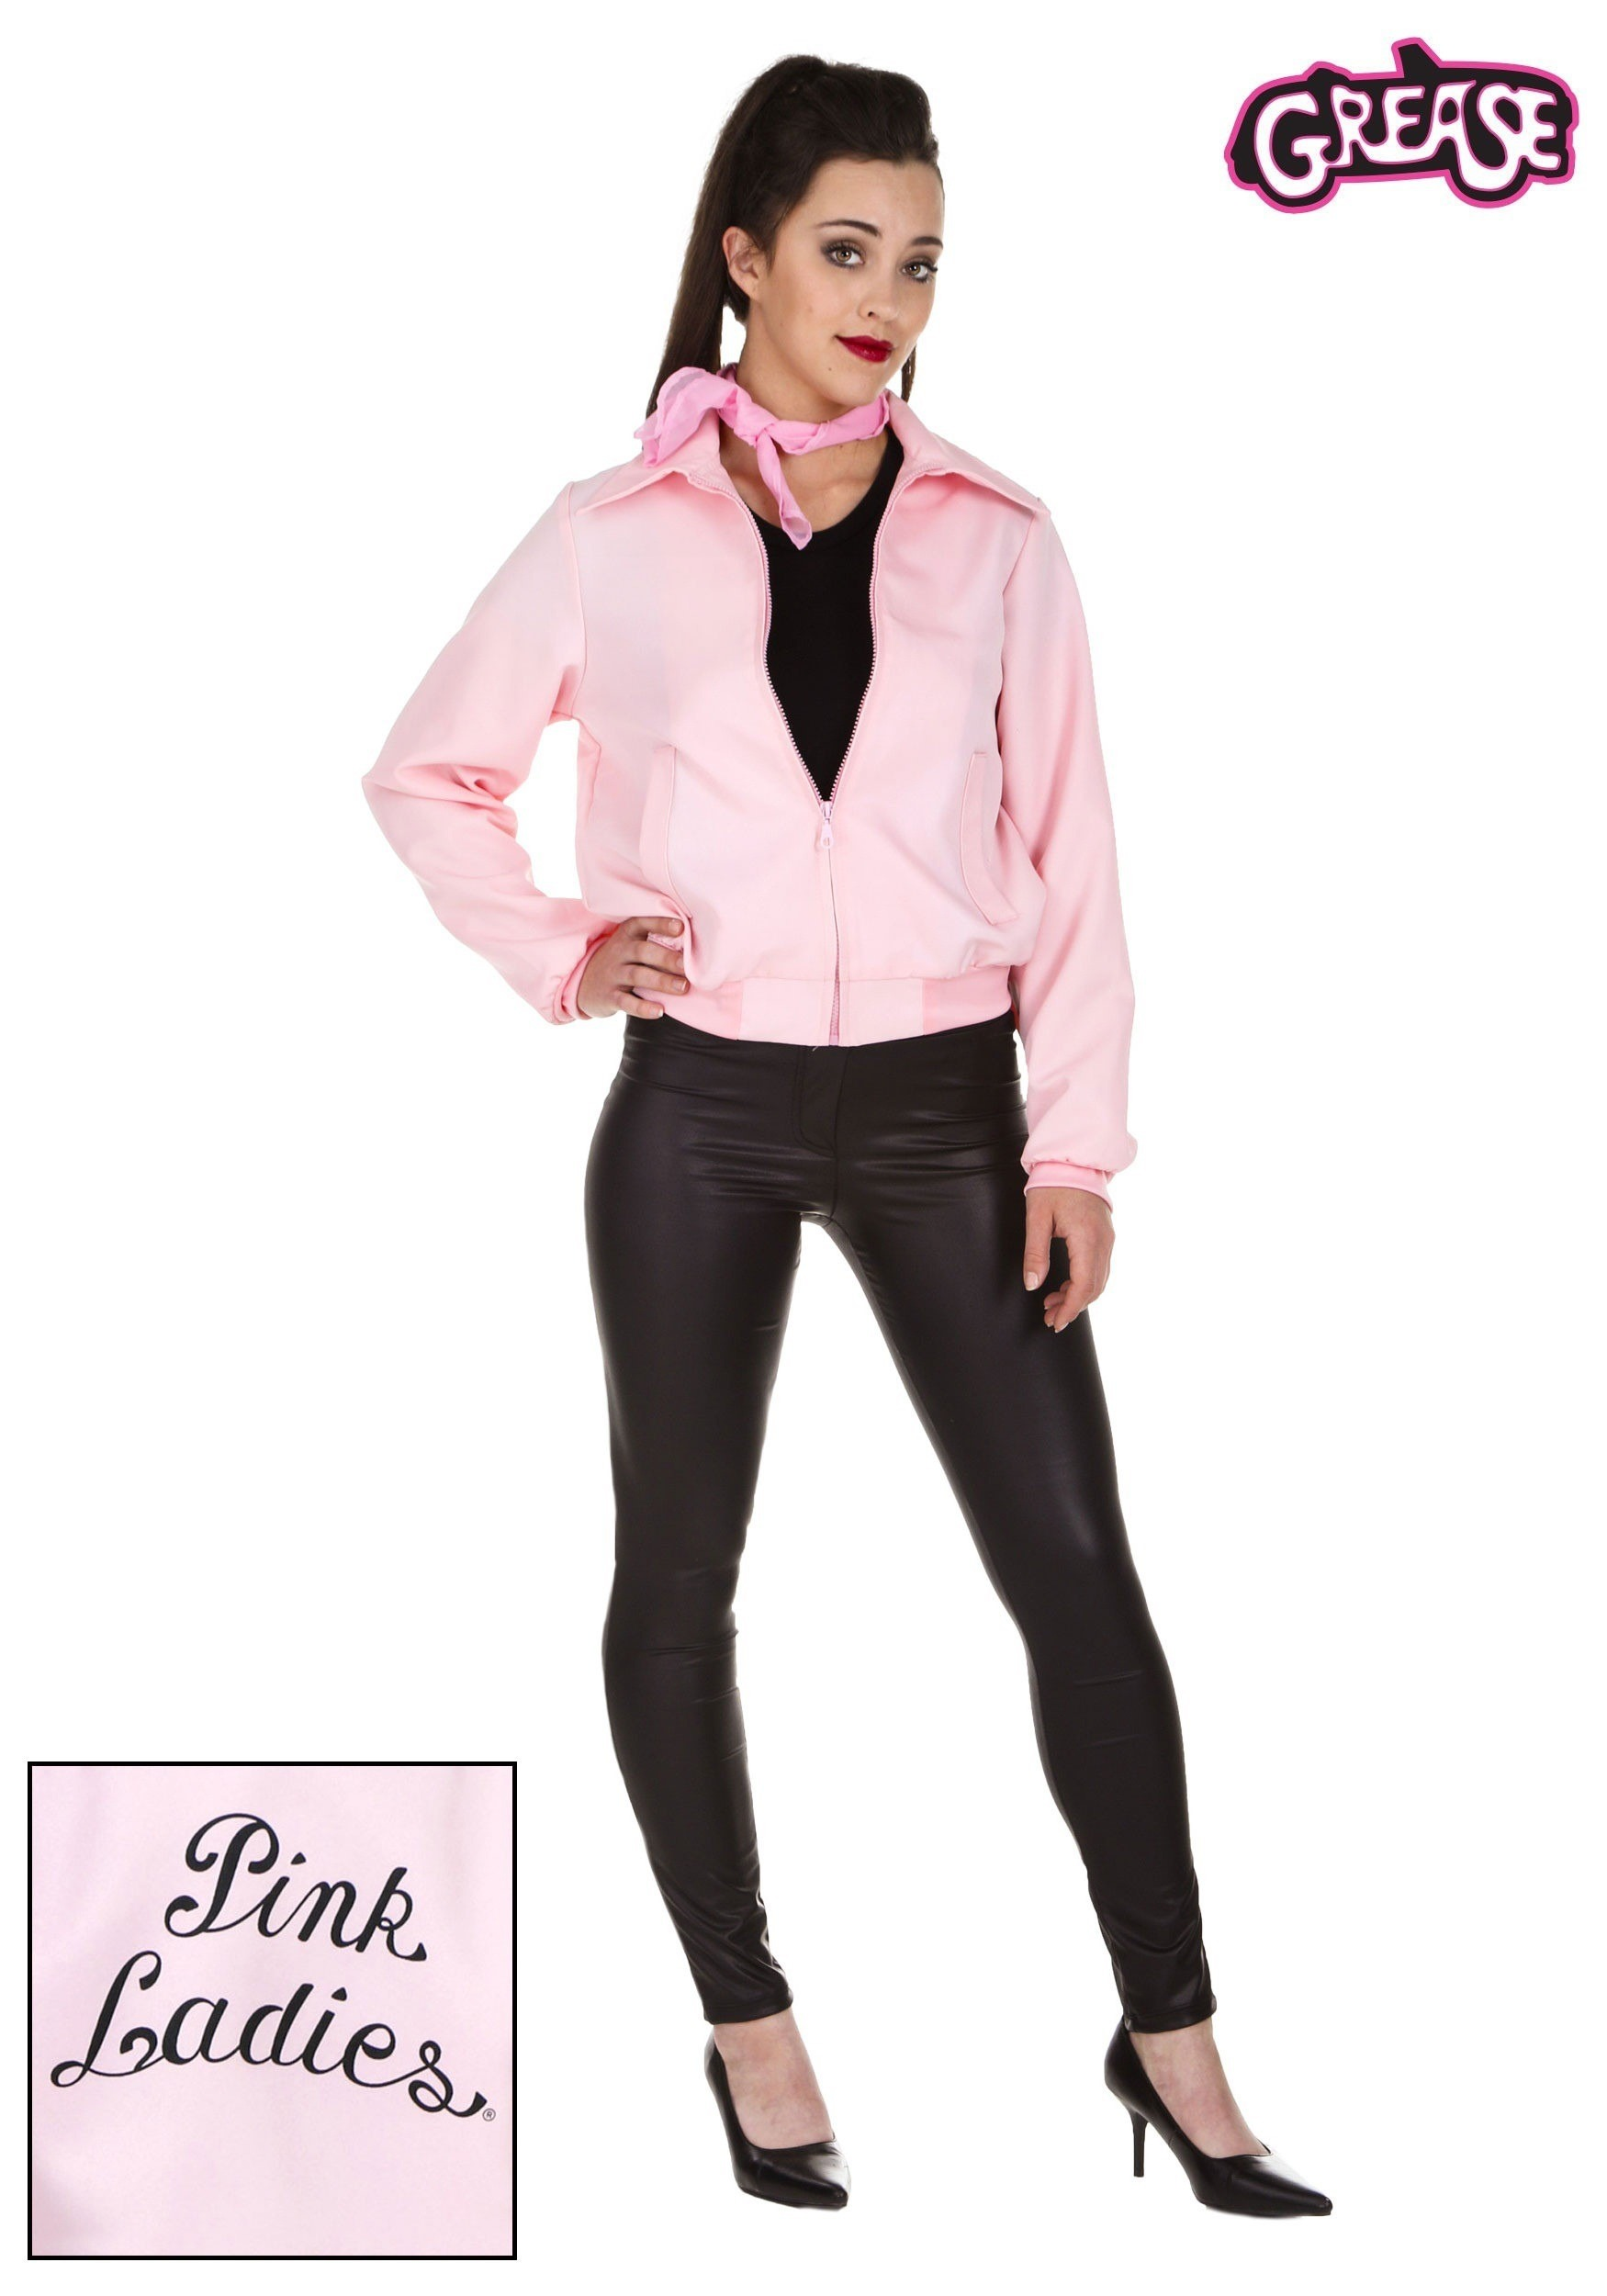 Deluxe Pink Ladies Jacket Costume For Plus Size